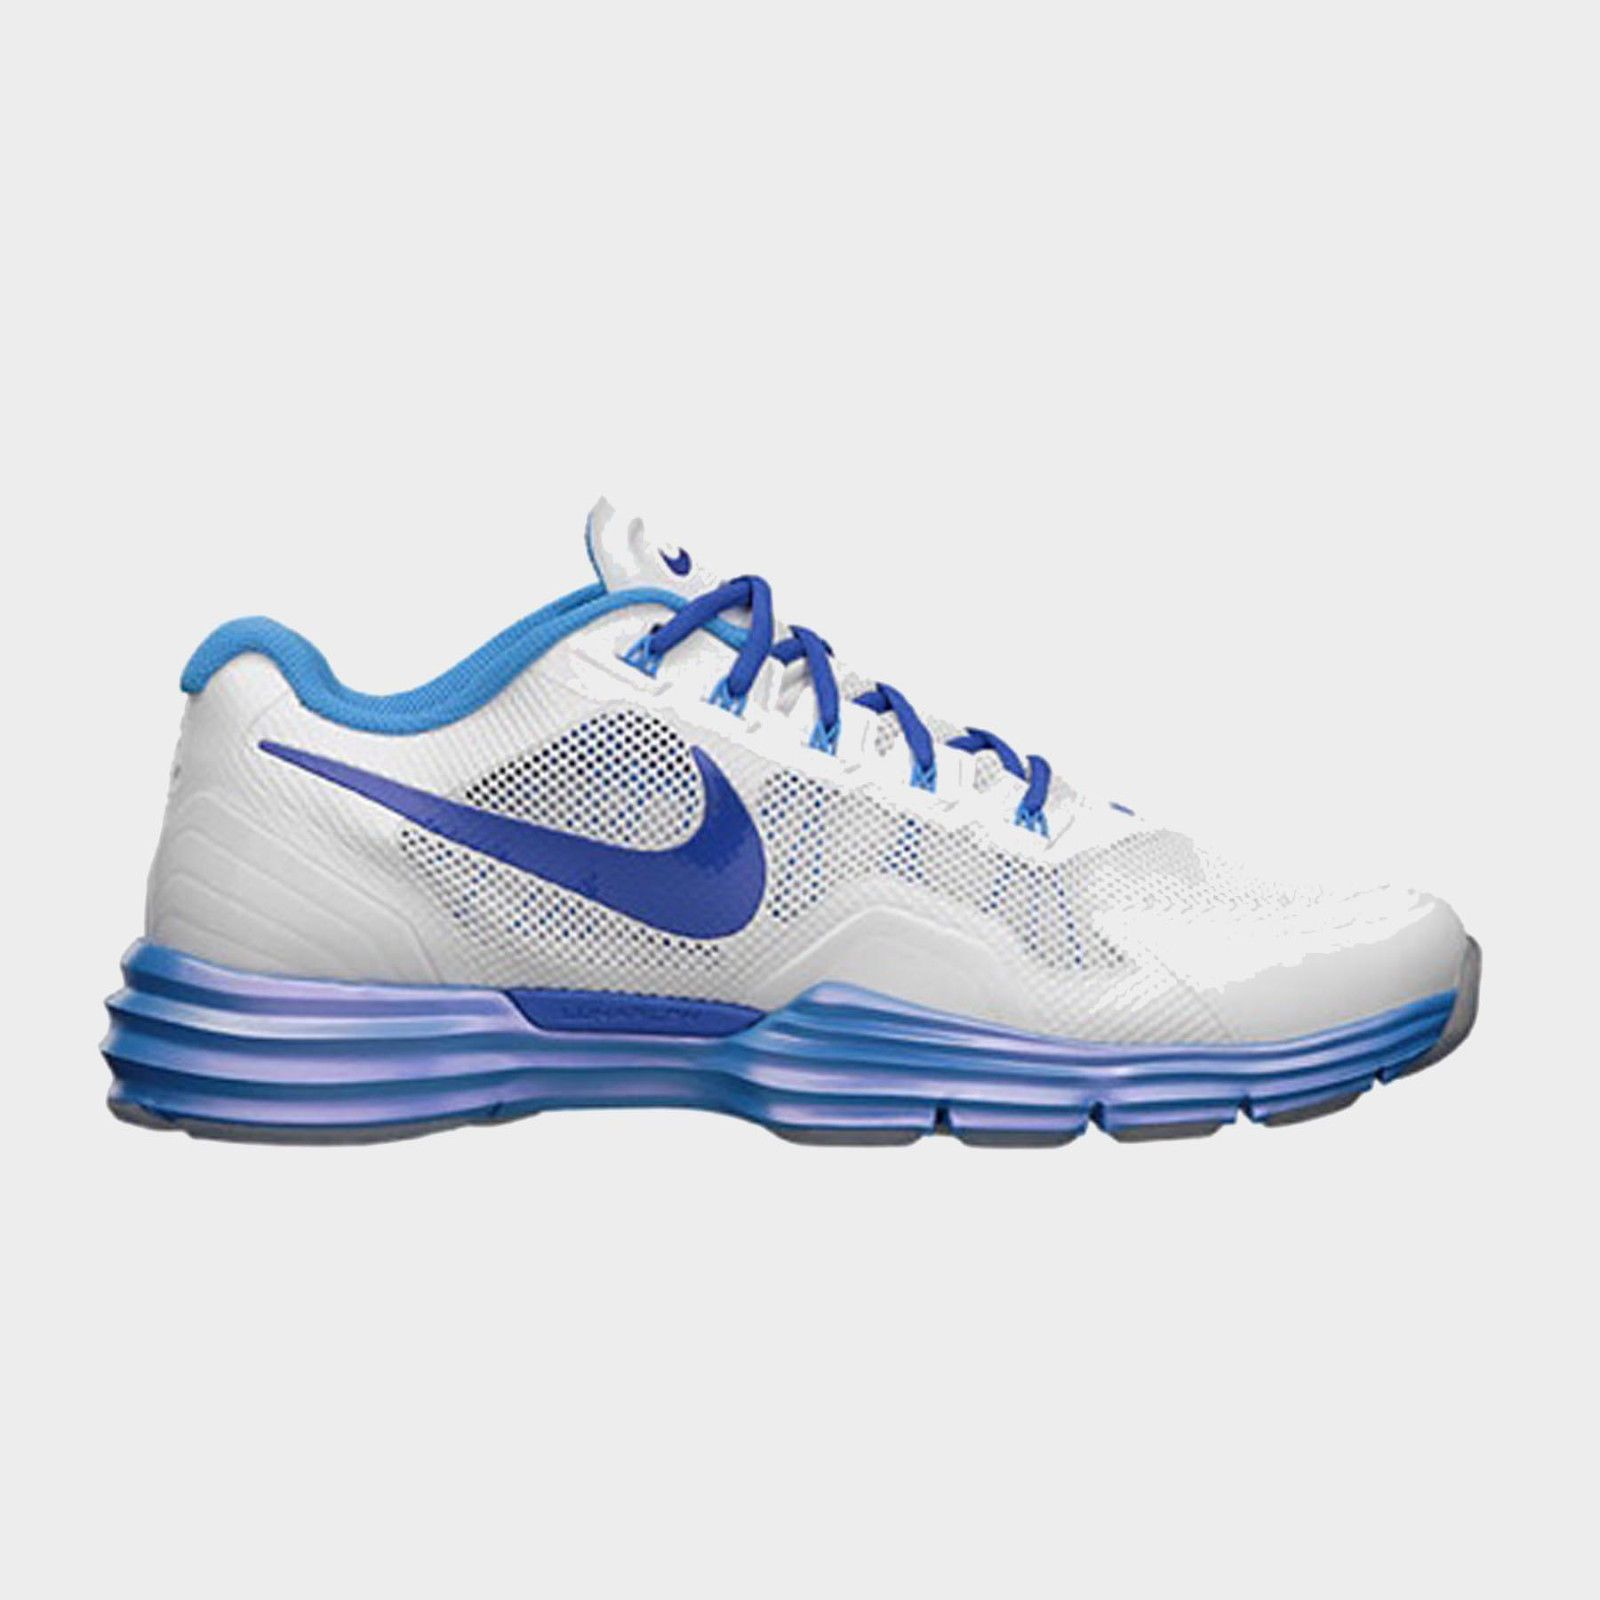 pretty nice e5522 3cf4b ... coupon code ebay nike lunar tr1 white blue men size 11 sneakers withing  our ebay store